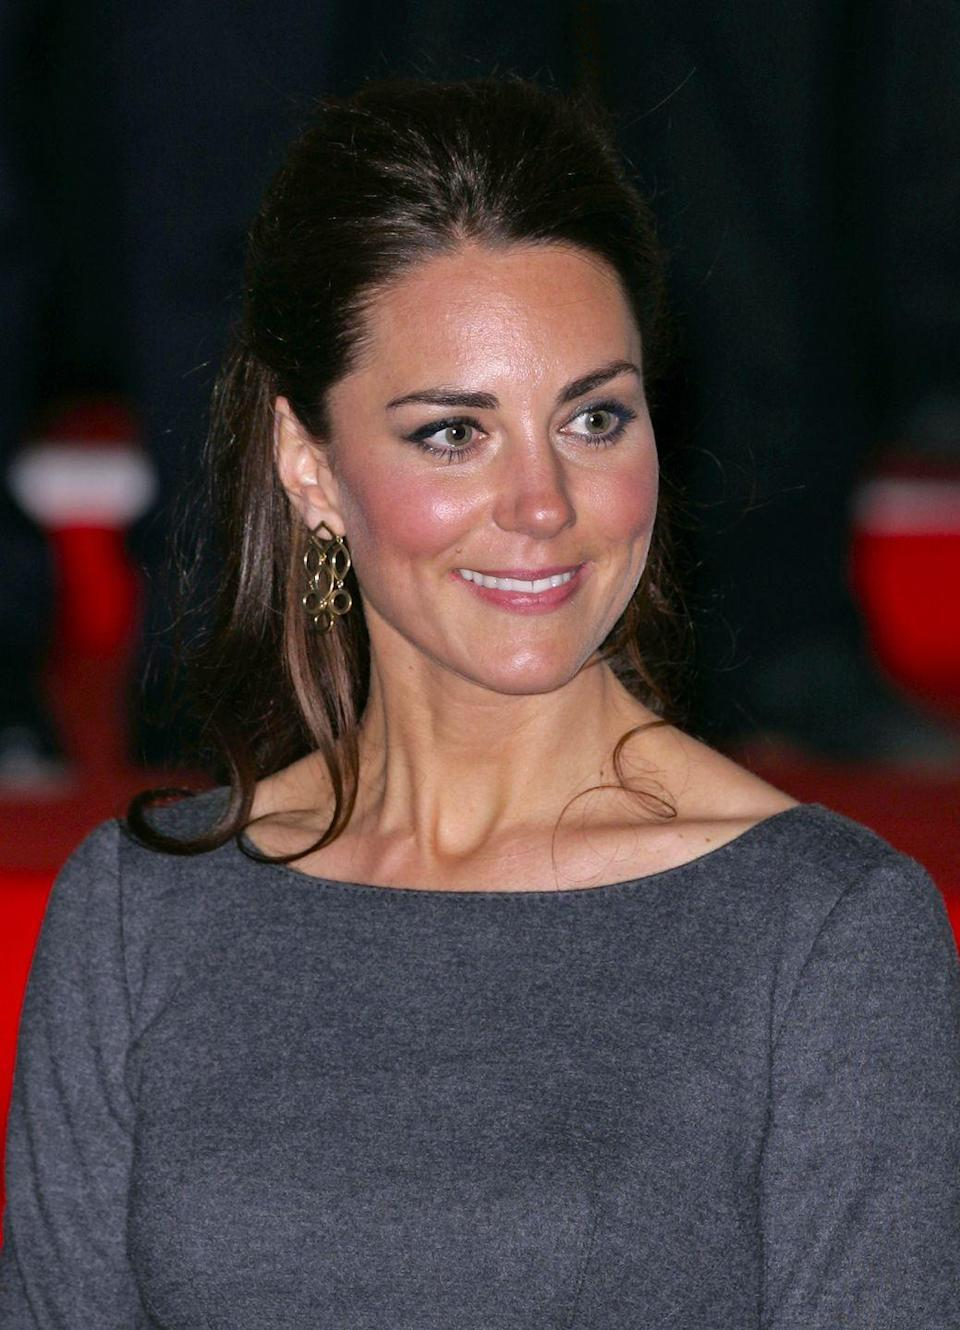 <p>Kate Middleton sported a pair of geometric gold earrings during a visit to London's Imperial War Museum in April 2012. </p>